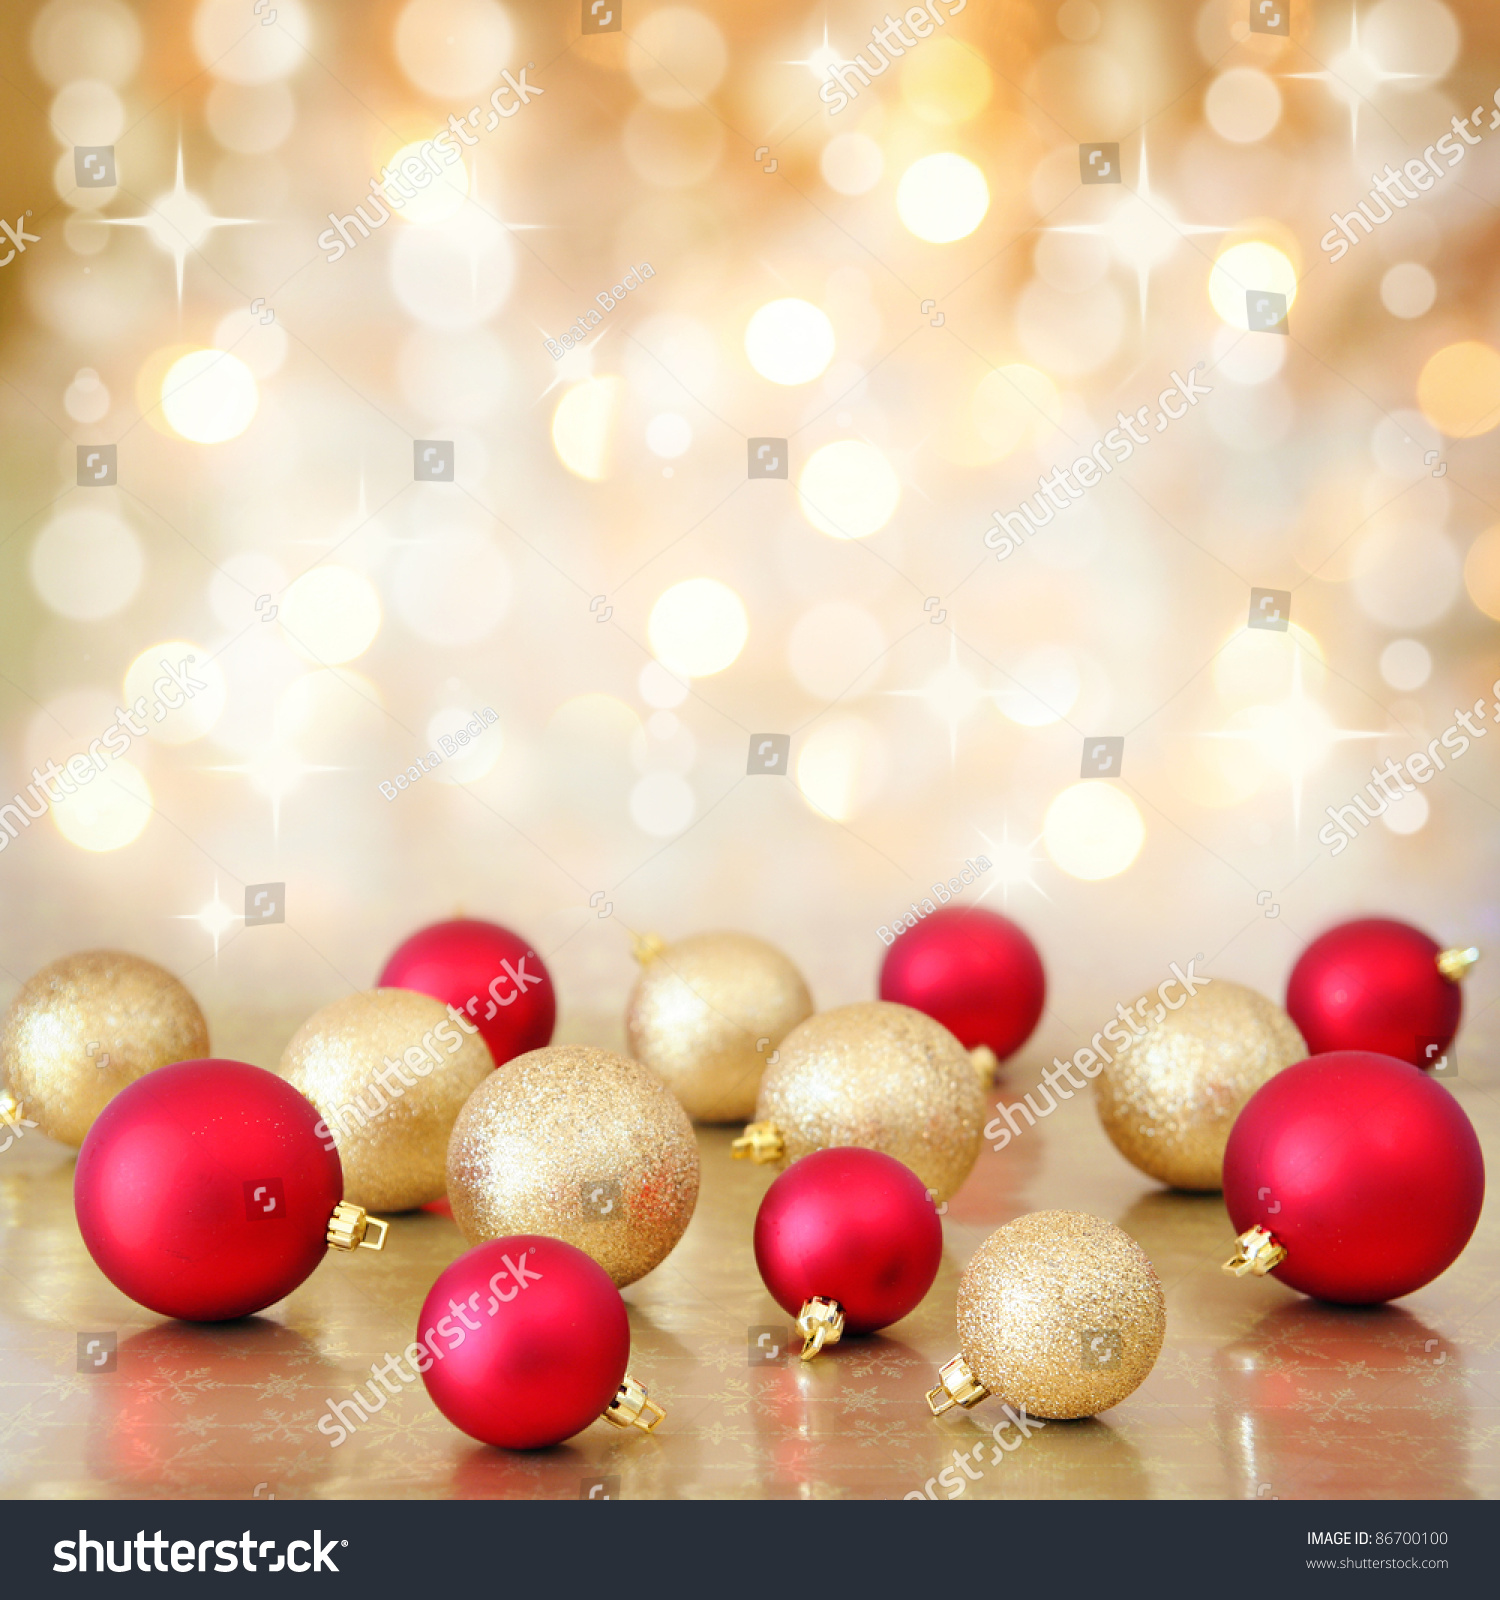 Gold and red ornaments - Red And Gold Christmas Baubles Ornaments On Background Of Defocused Golden Lights Shallow Dof